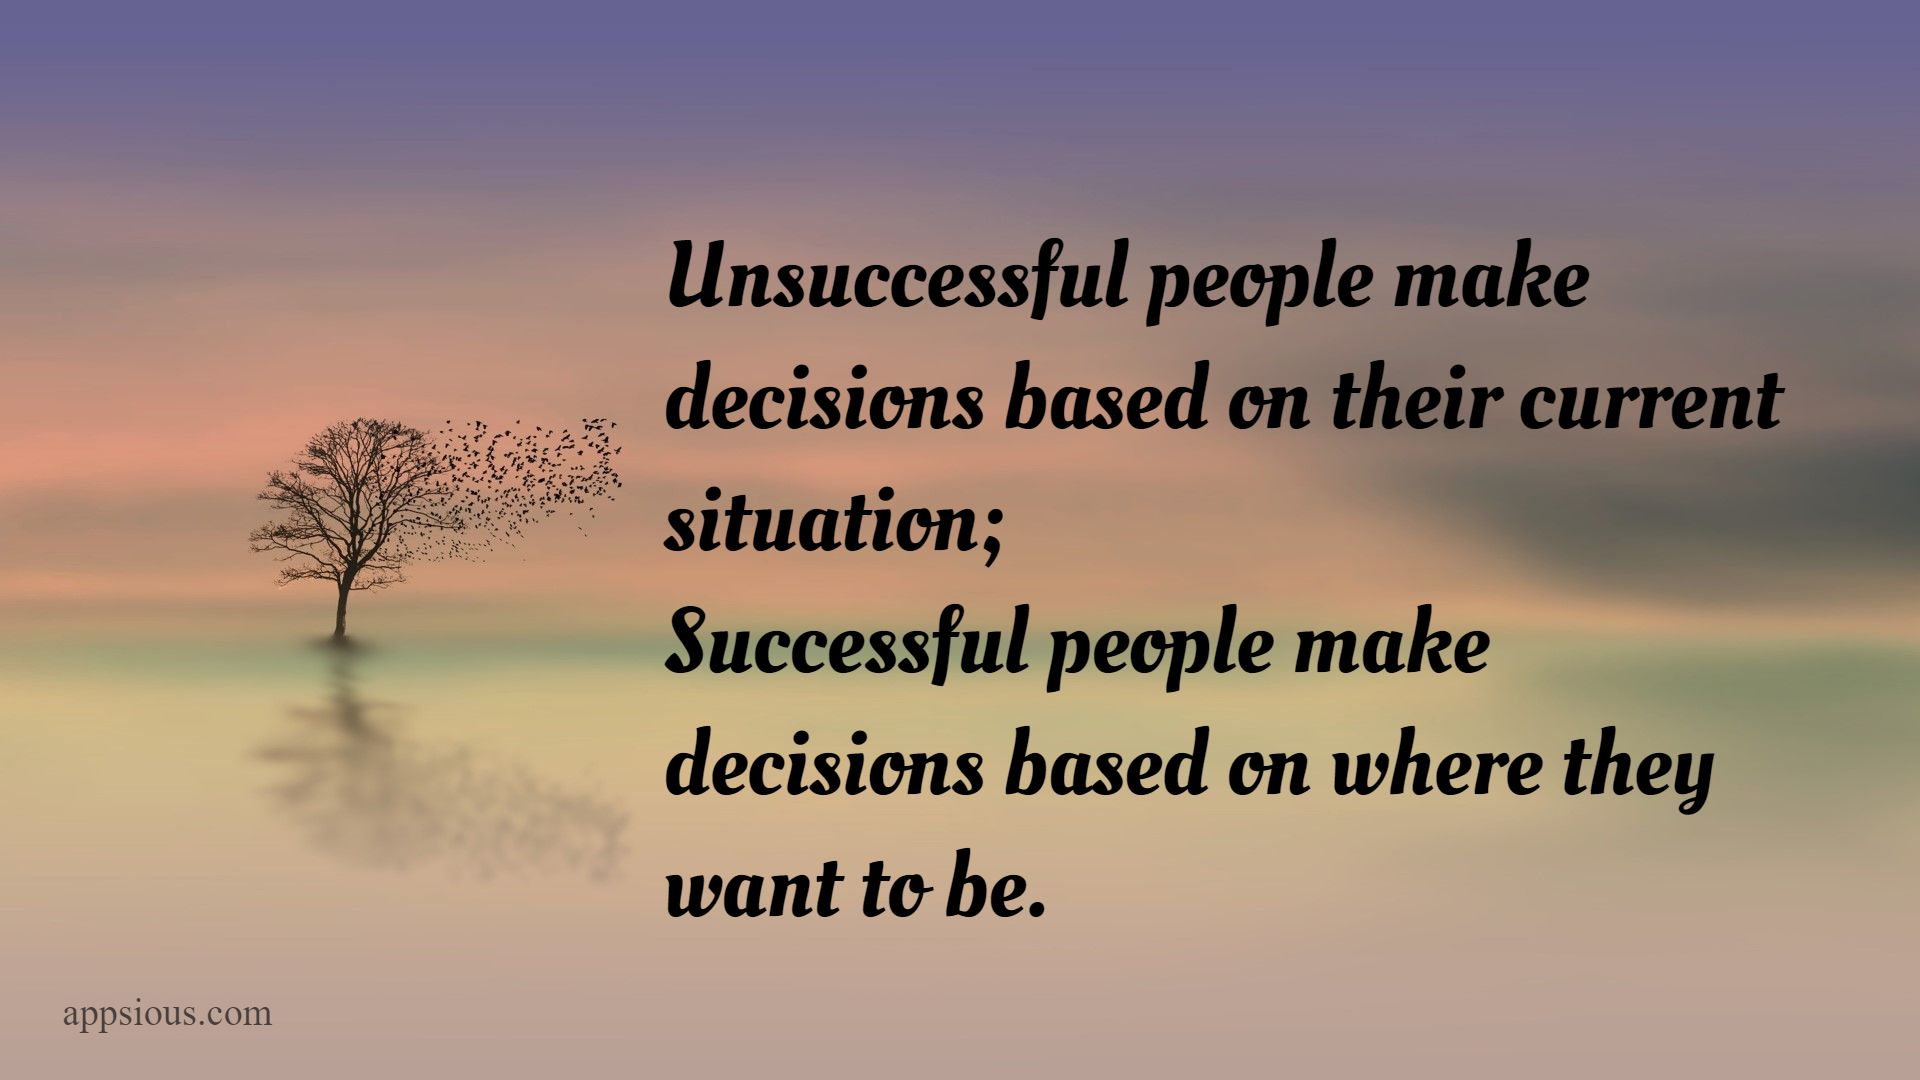 Unsuccessful people make decisions based on their current situation; successful people make decisions based on where they want to be.